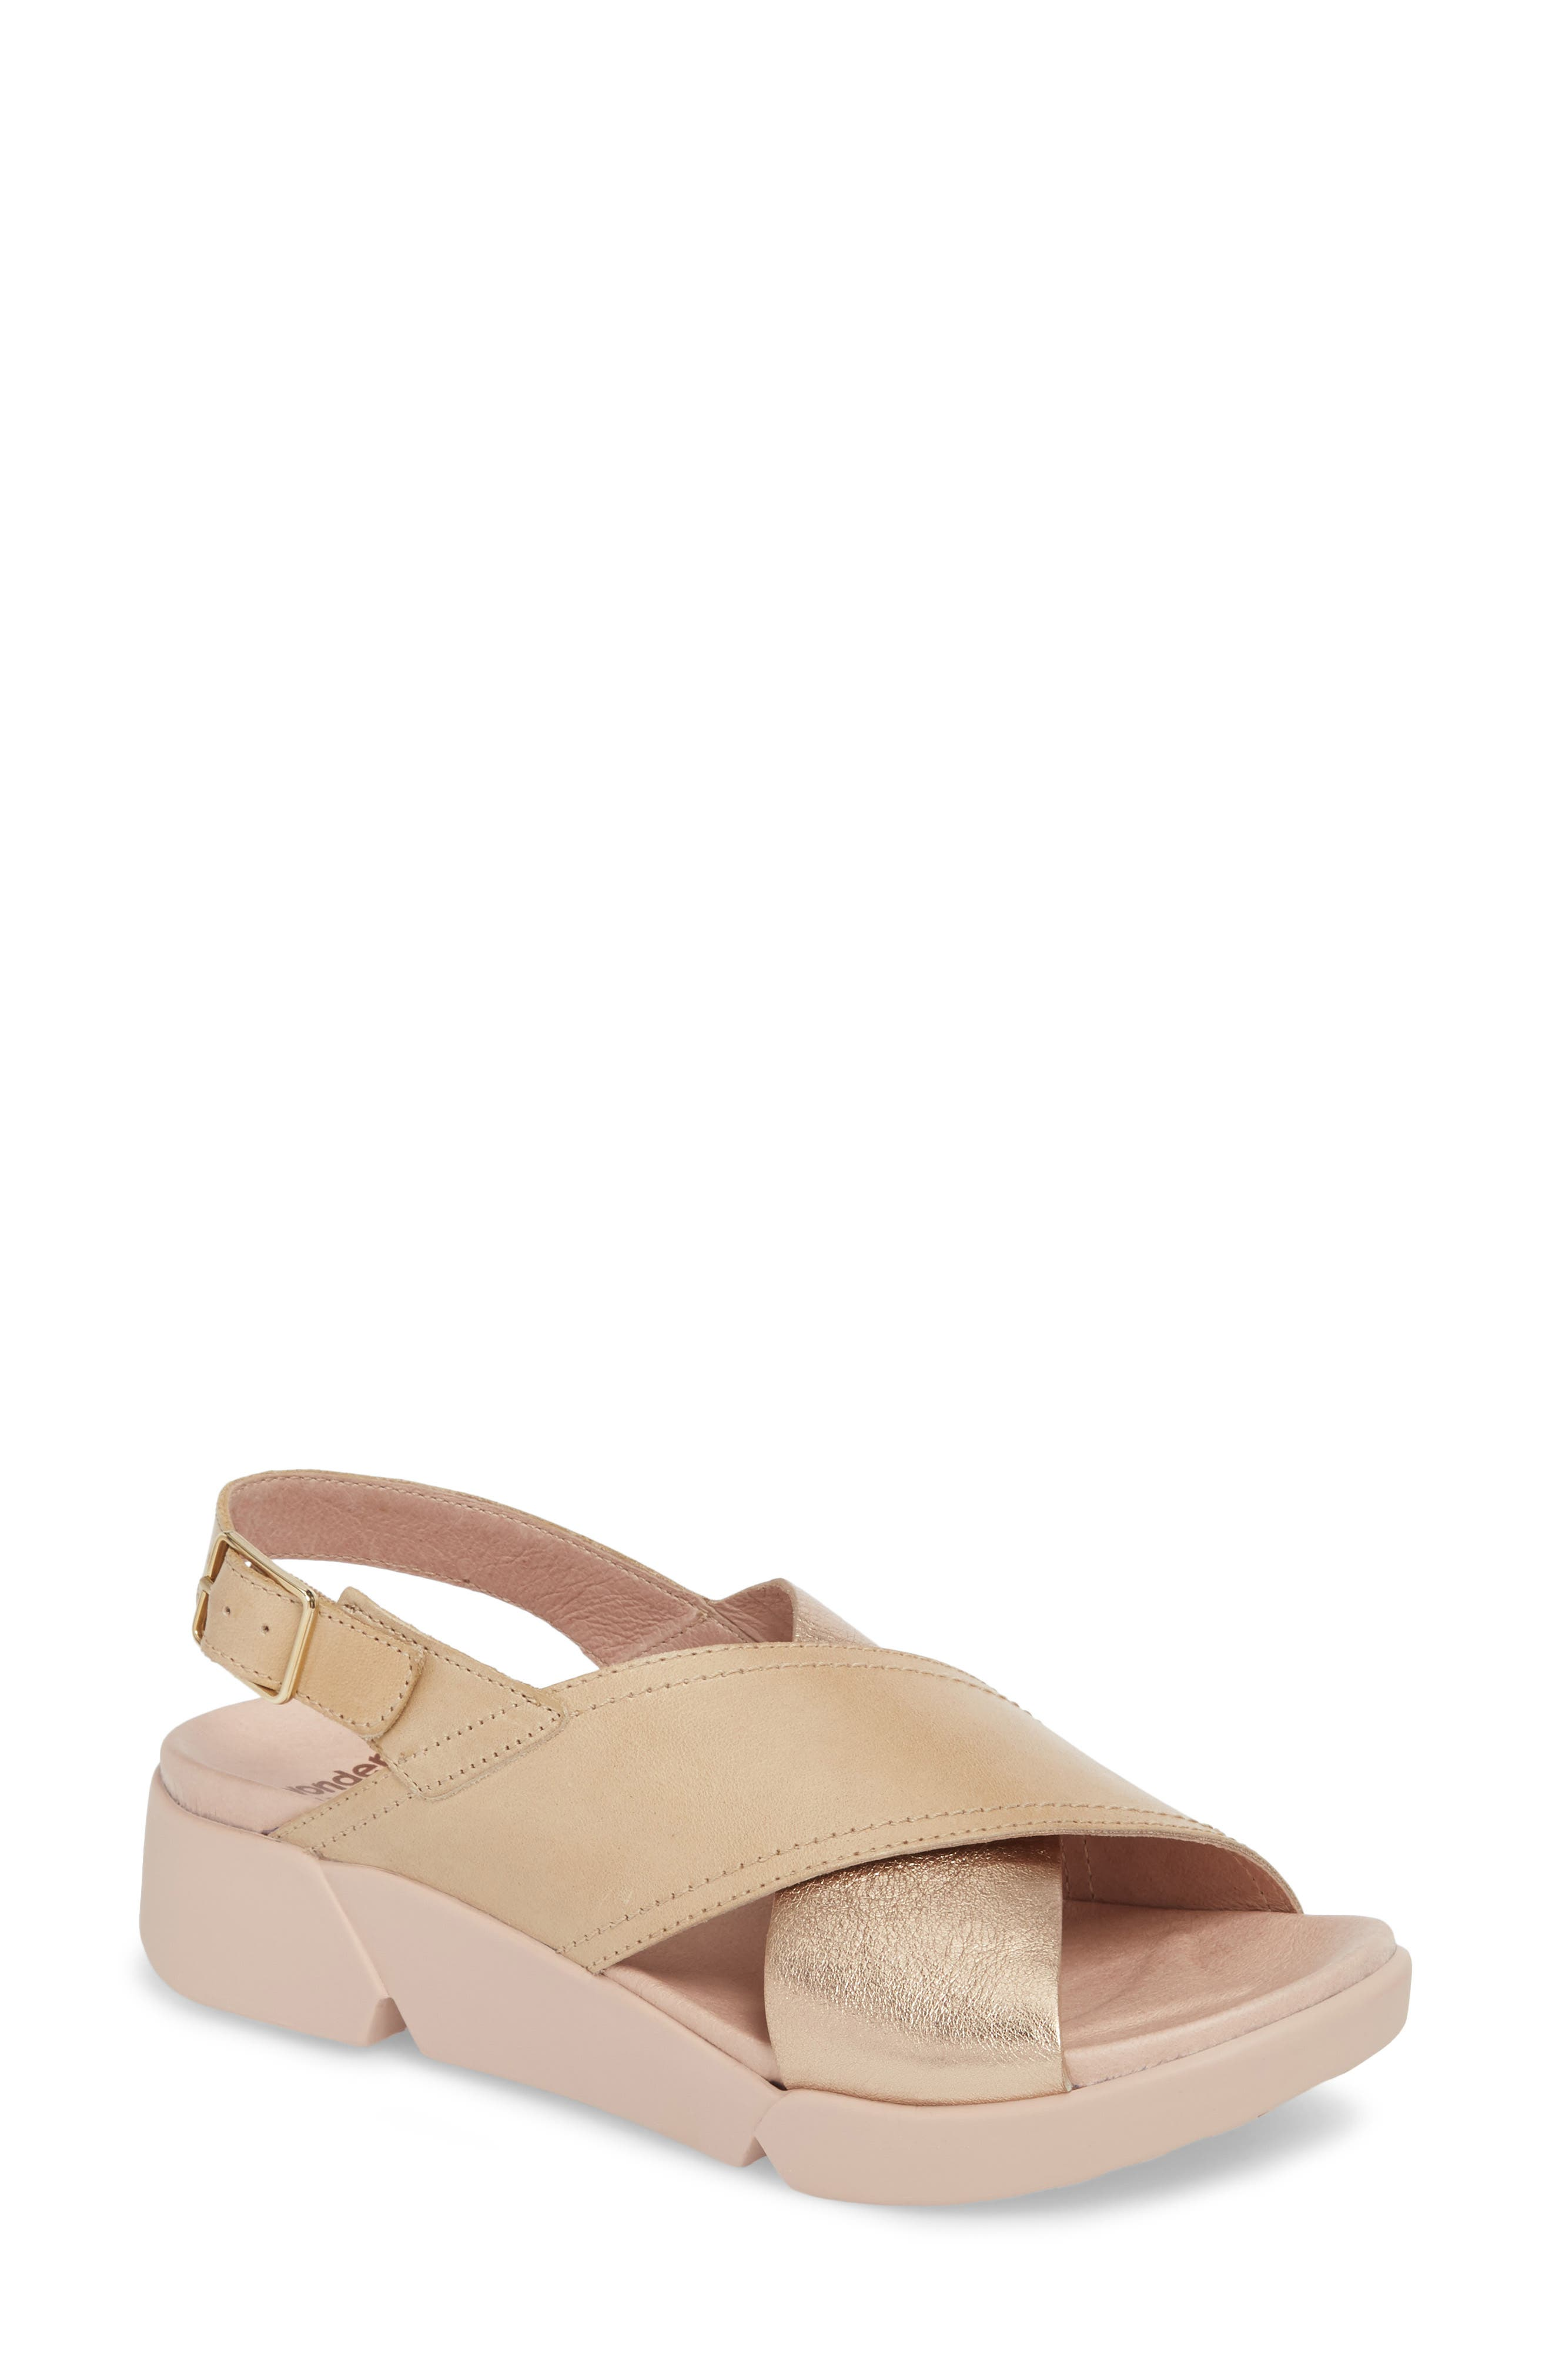 Wonders Platform Wedge Sandal (Women)